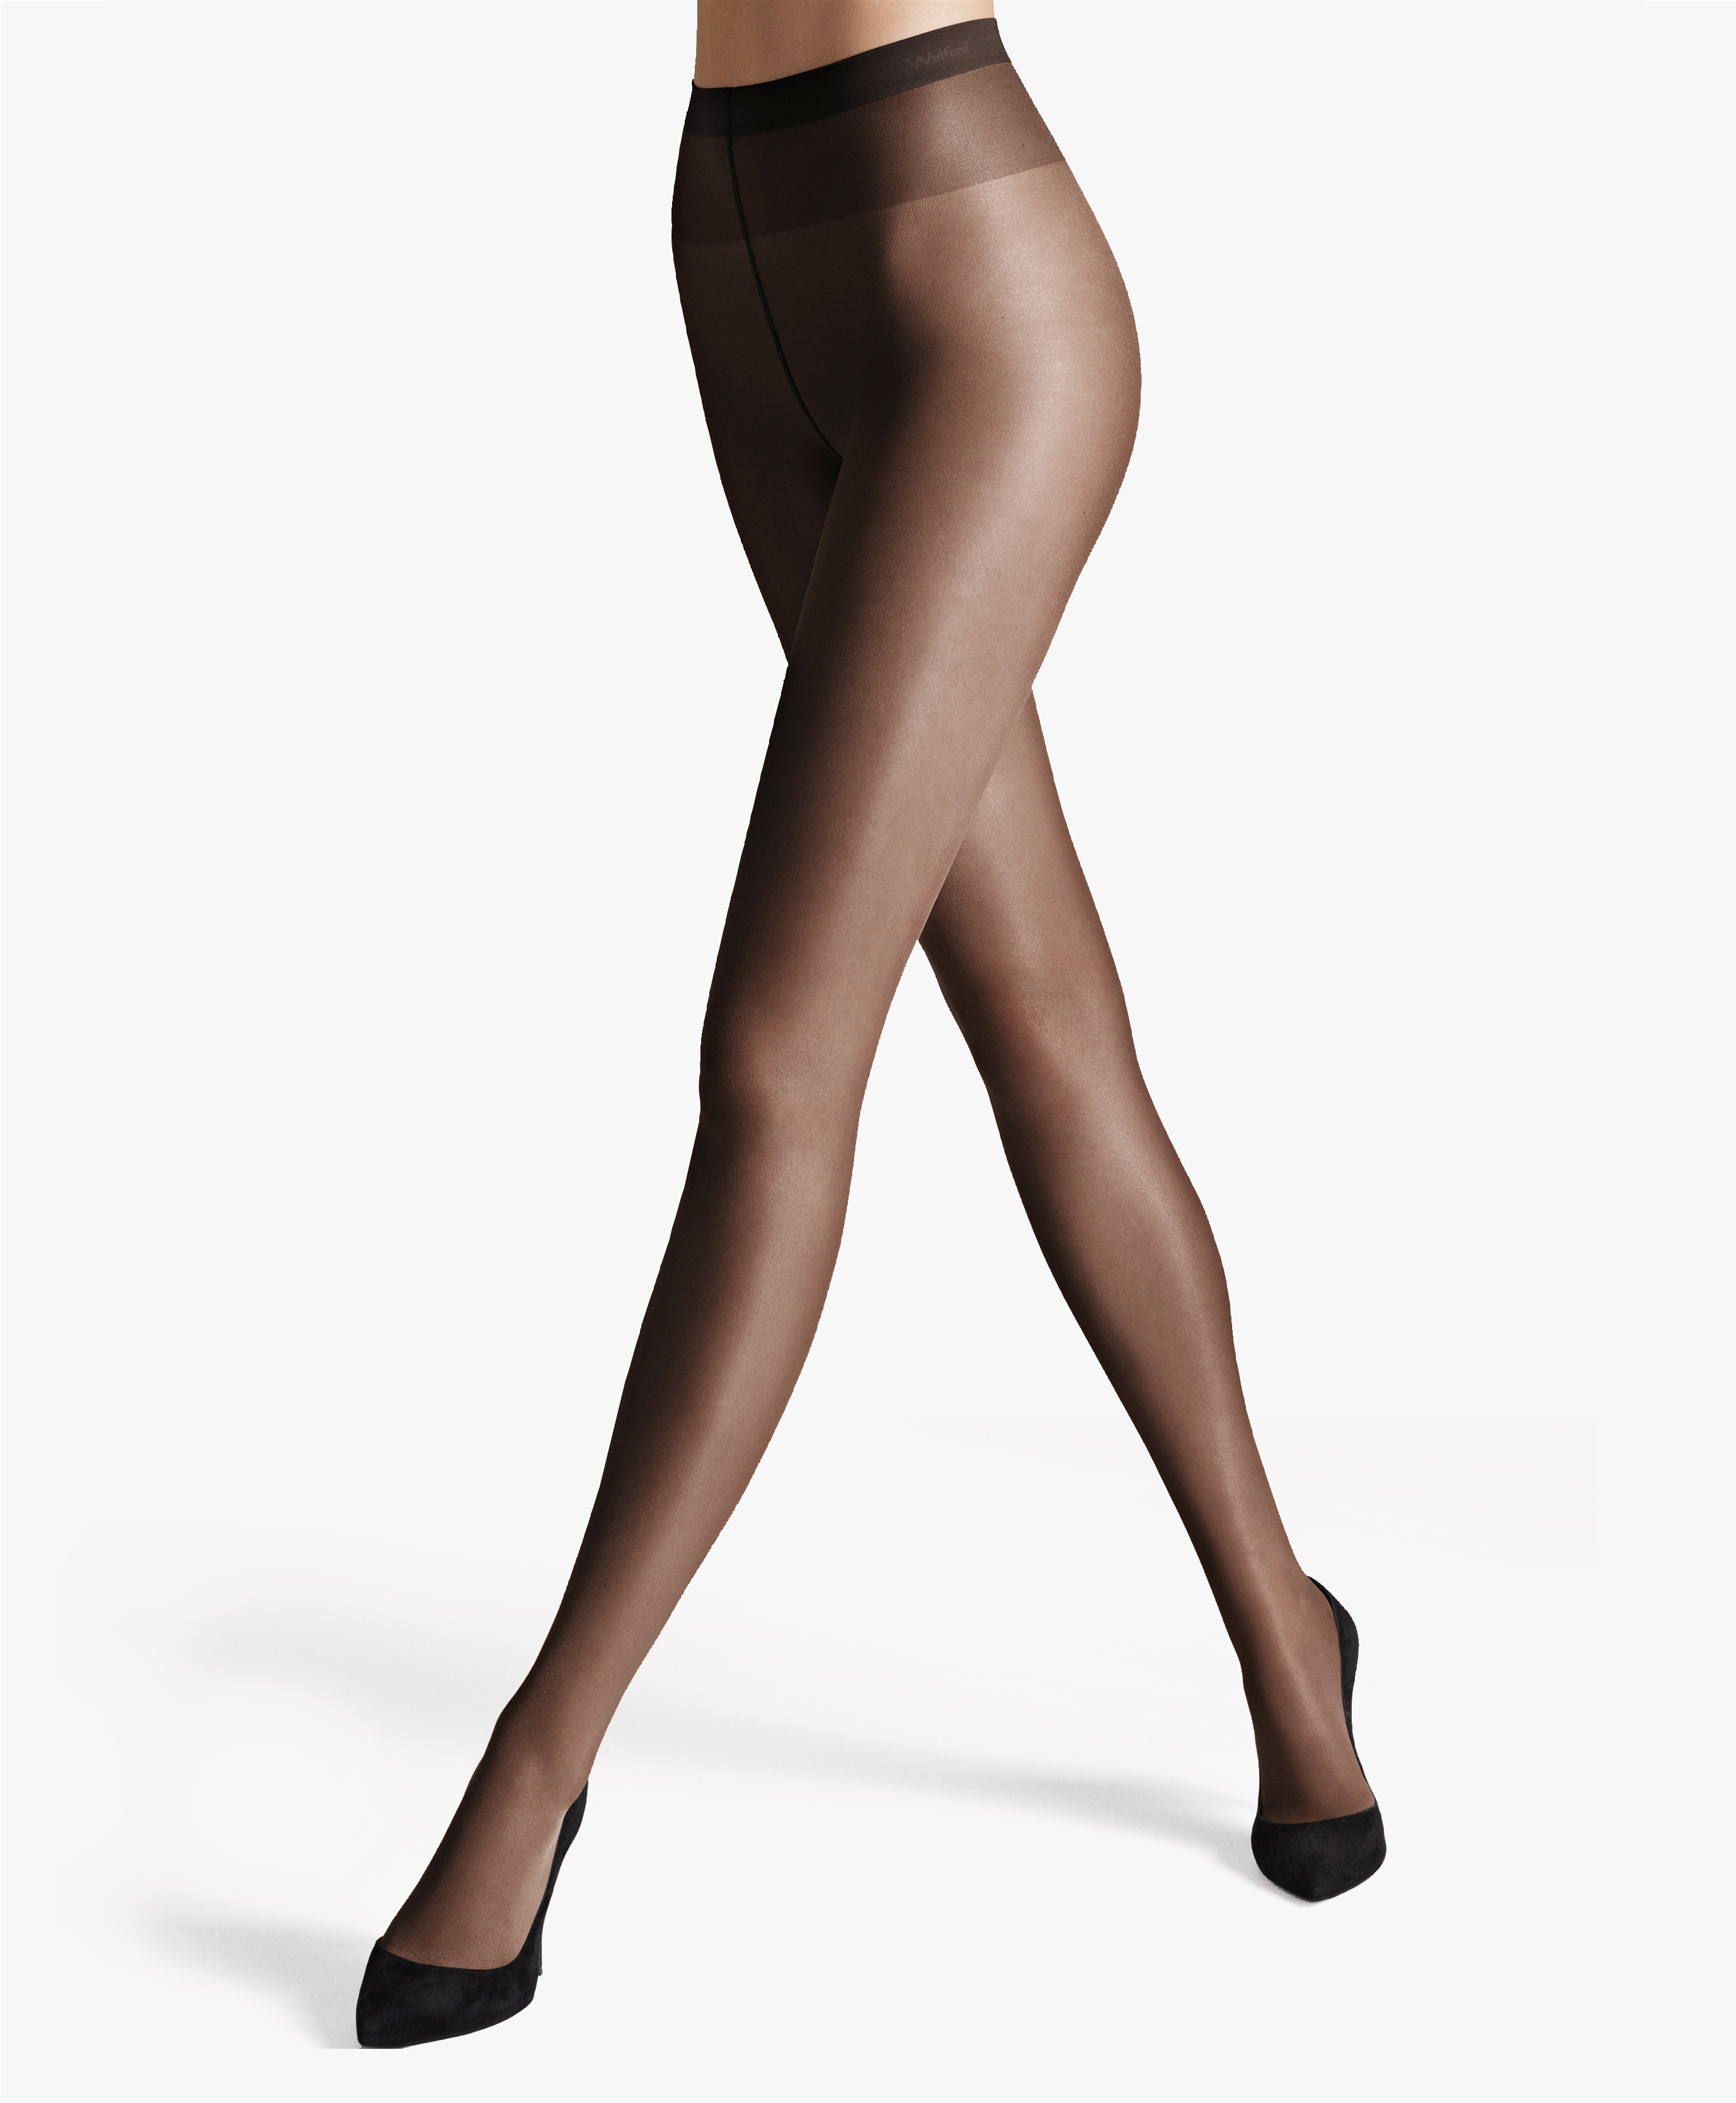 Wolford Satin Touch 20 Sheer Black Tights Size Large 12102 for sale online